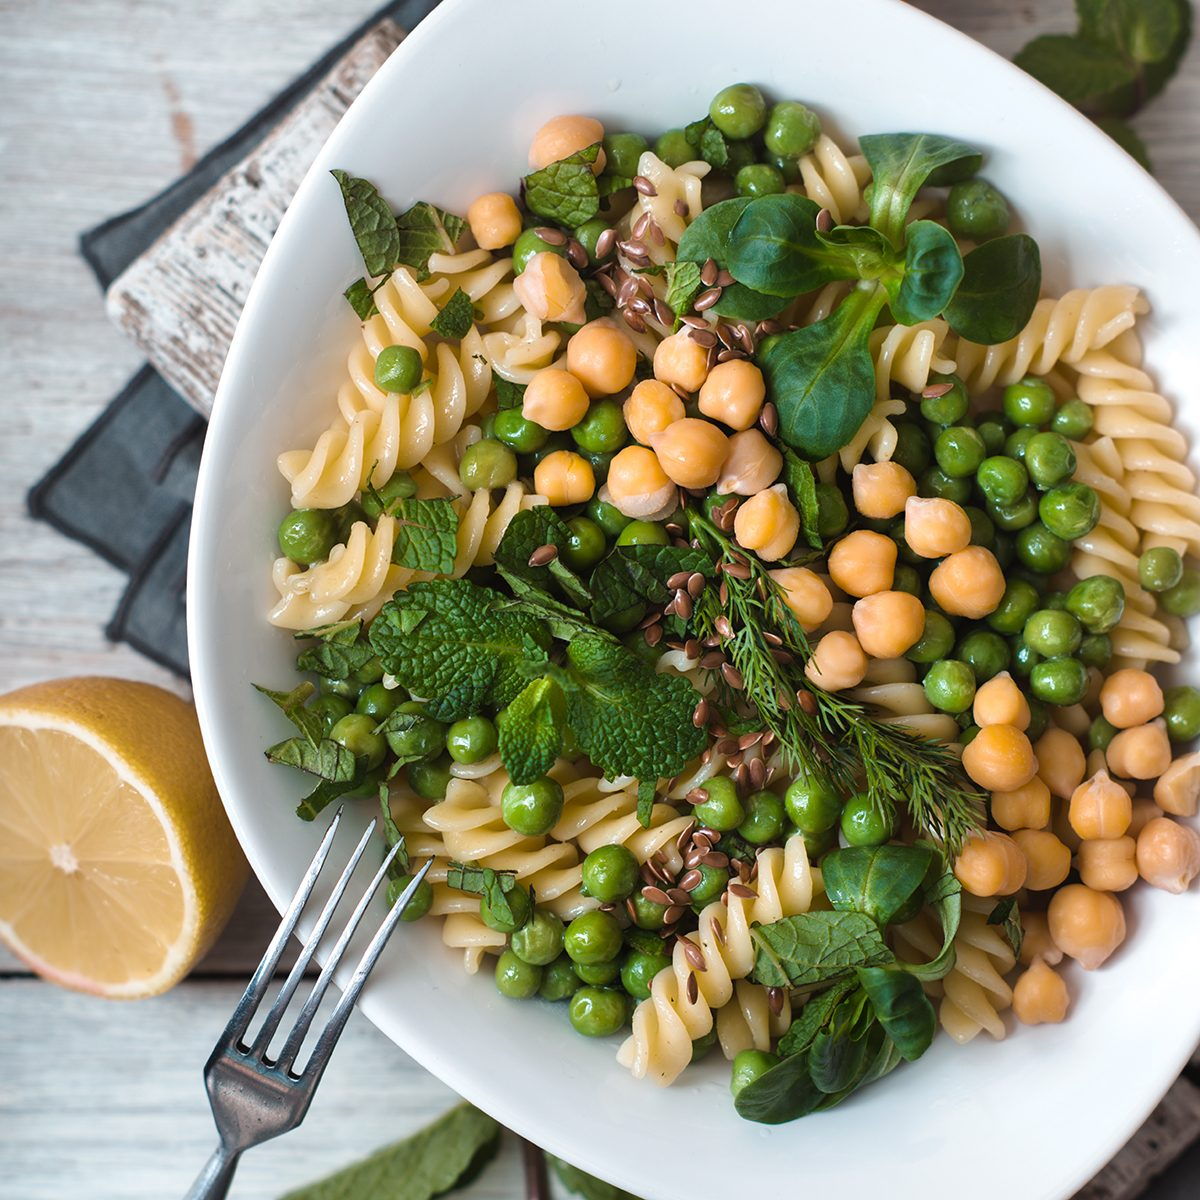 Salad with fusilli, chickpeas, grass in a white ceramic bow